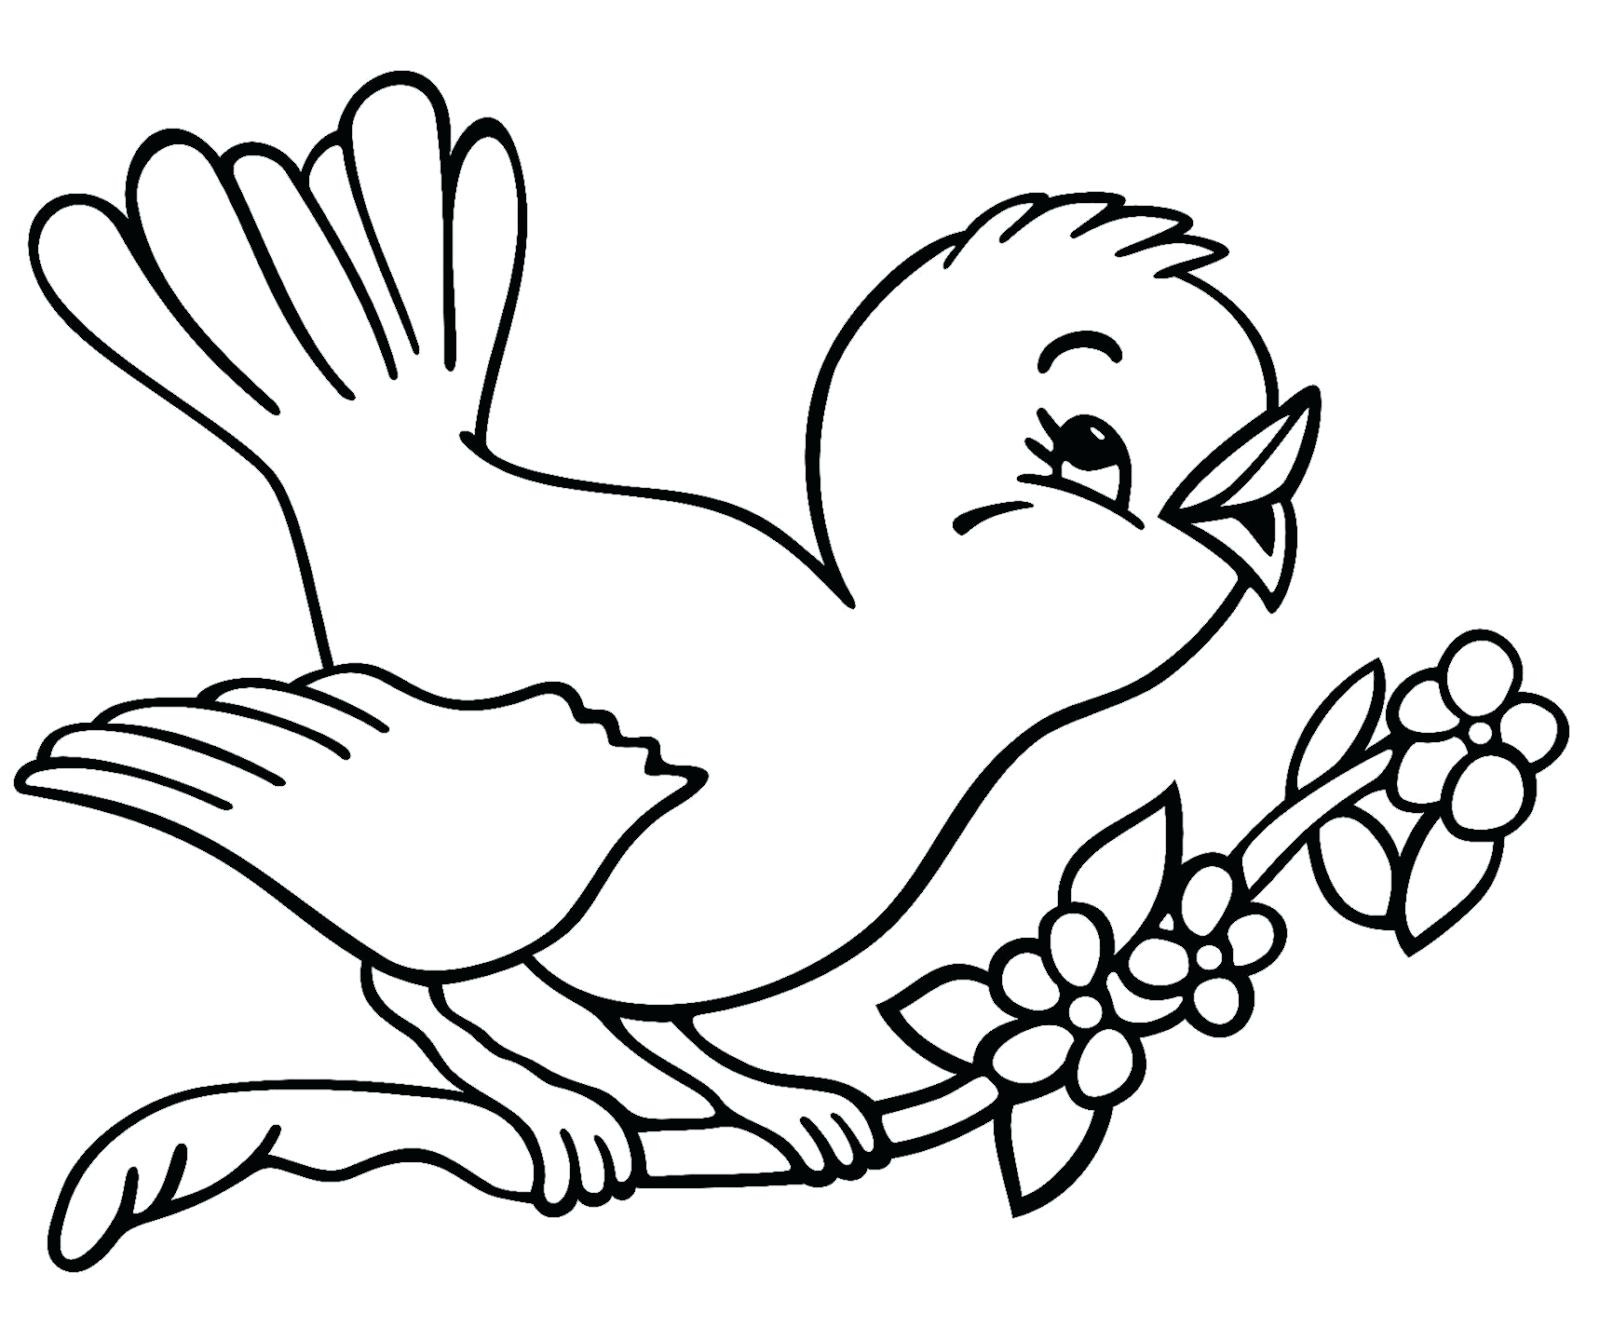 1600x1328 Coloring Pages Christmas For Adults Special Birds Book Design K